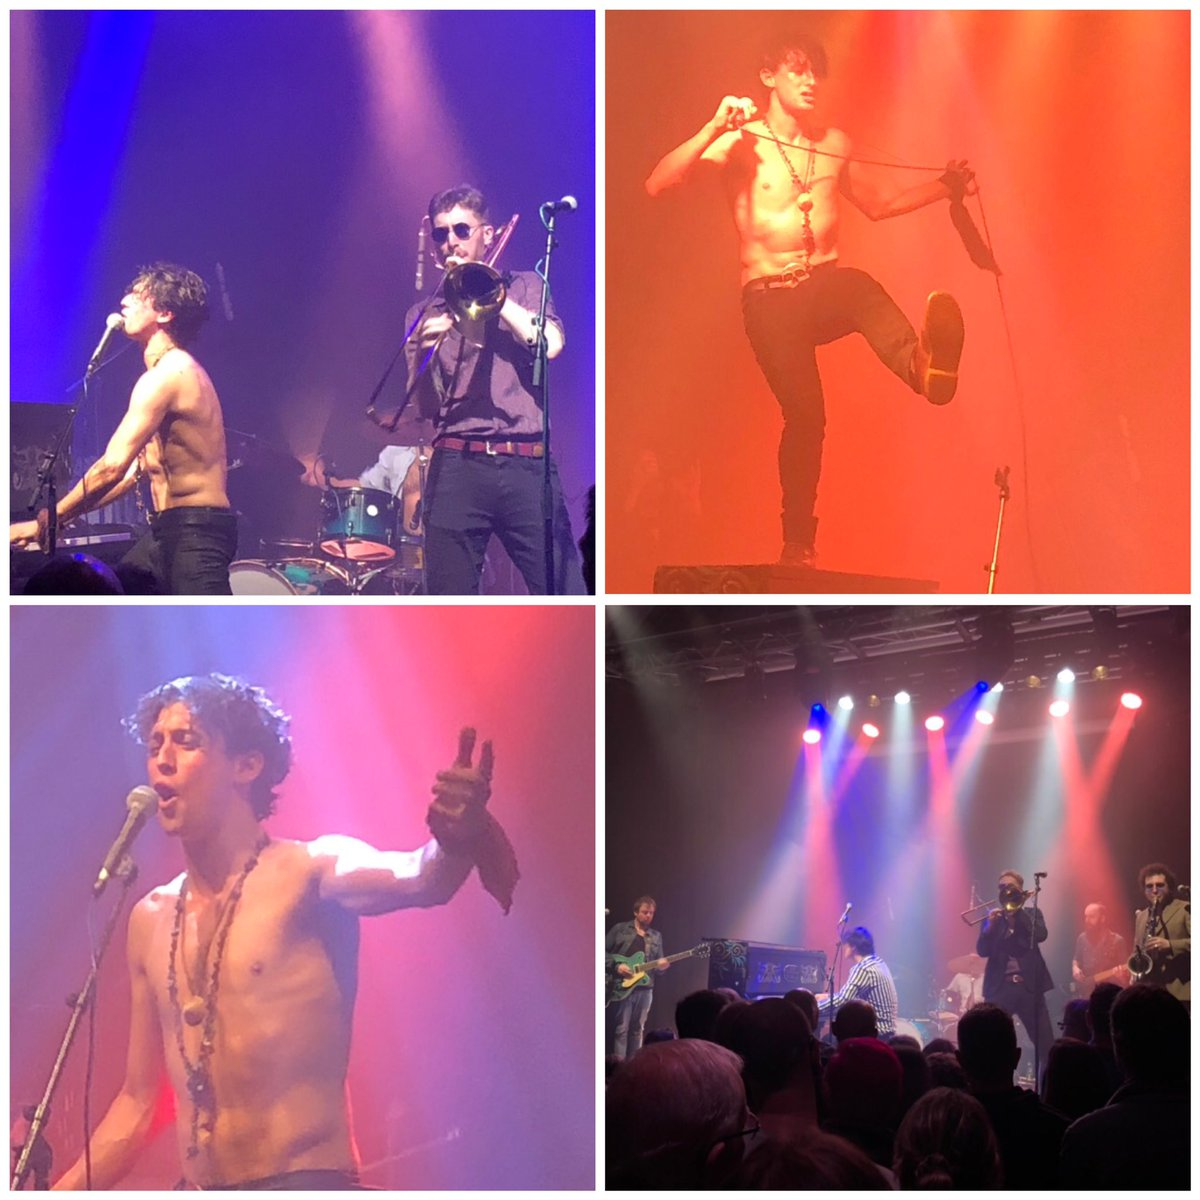 Last night we were lucky enough to see @tankusthehenge perform at @ChapelArtCentre - Awesome gig. If you get the chance to see them, do it!  They are genuinely brilliant. Congrats on a fantastic night guys. Come back to #somerset soon  <br>http://pic.twitter.com/1LIB0dbGiV